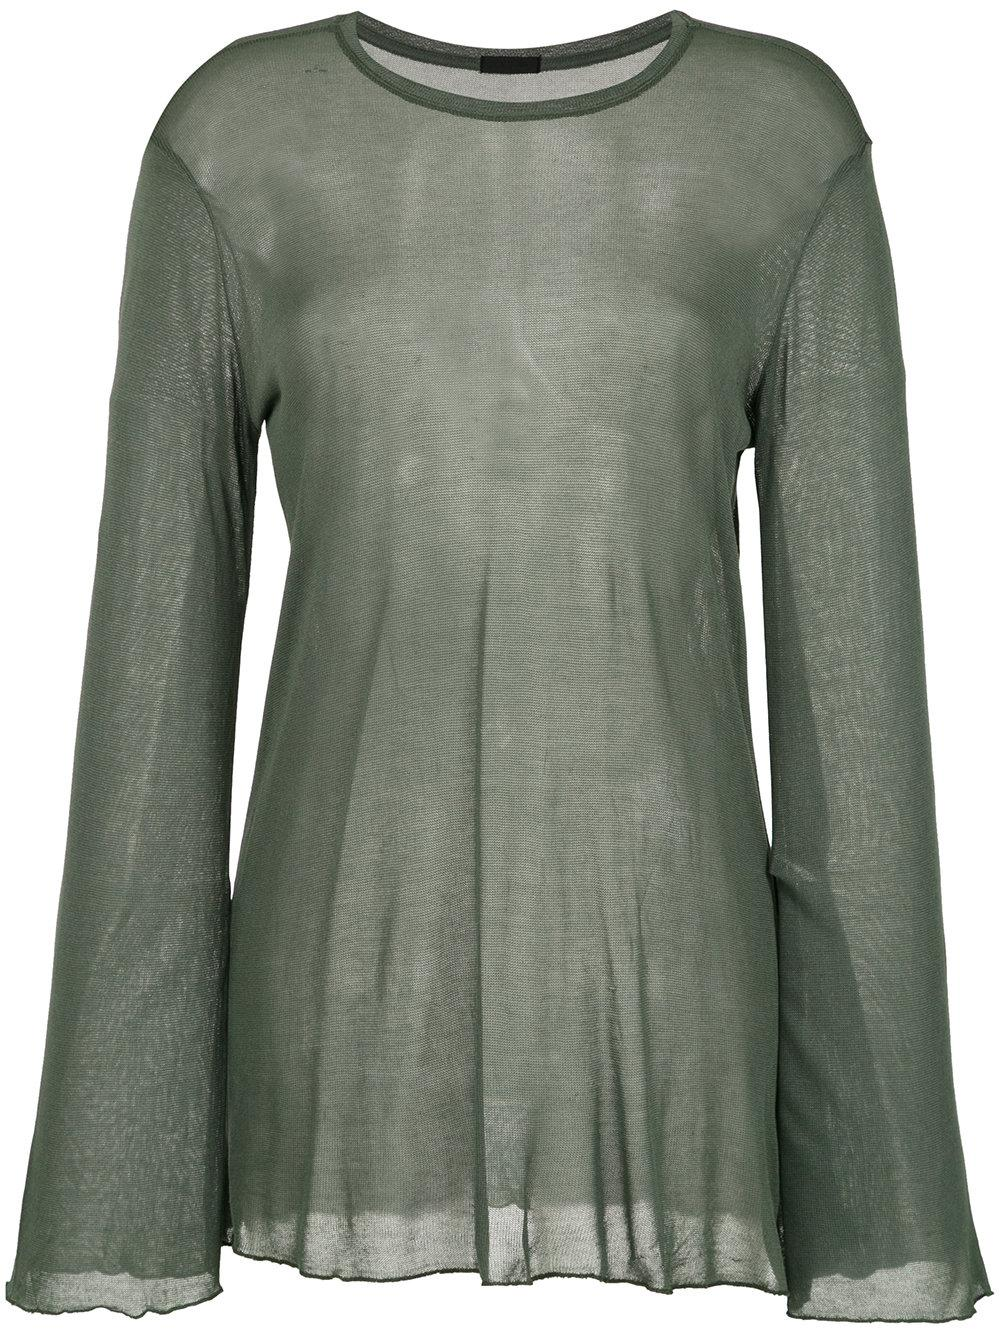 Osklen Super Fine Sheer Blouse In Green